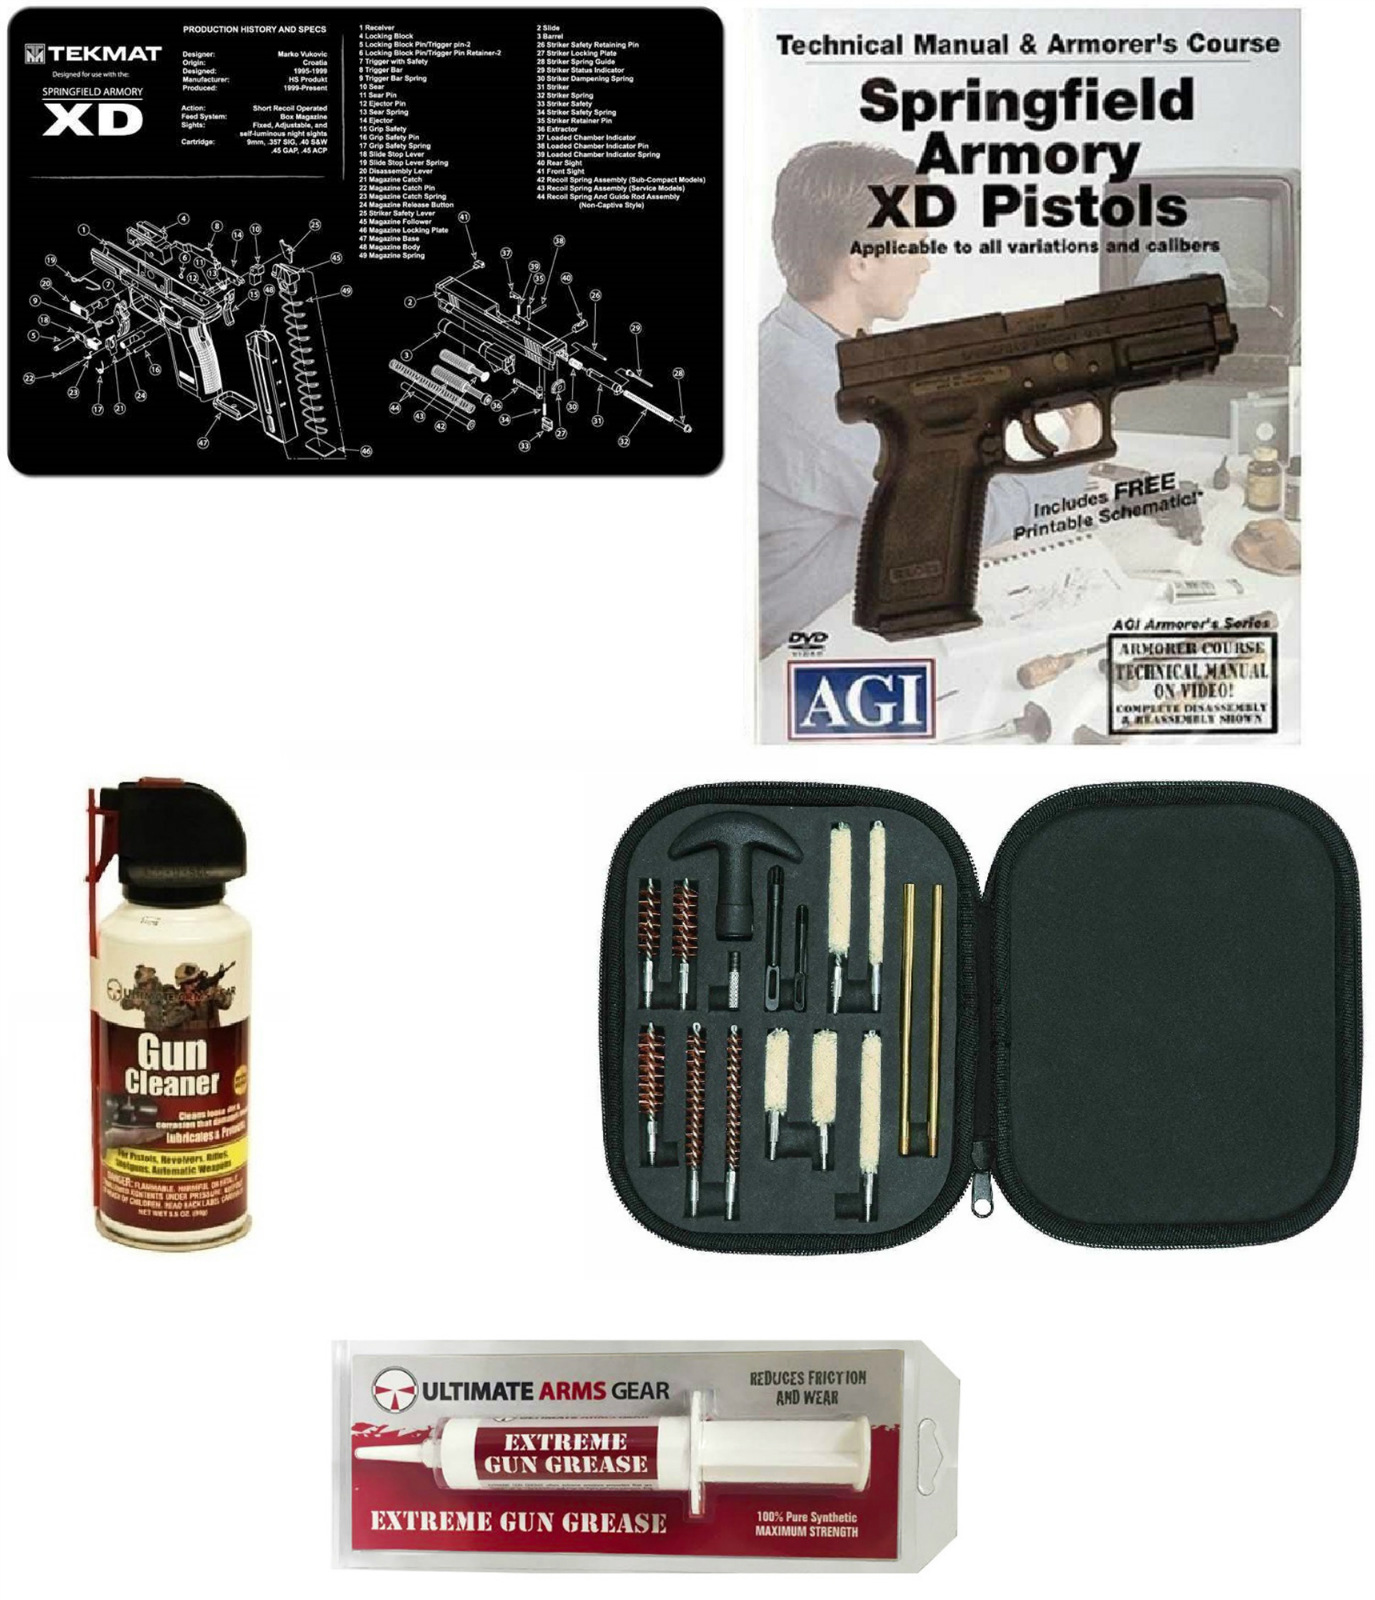 Gunsmith Cleaning Gun Mat Springfield Armory XD + Pro Cleaning Supplies Kit 17 pc Cleaning Kit Brushes, Swab, Slotted... by